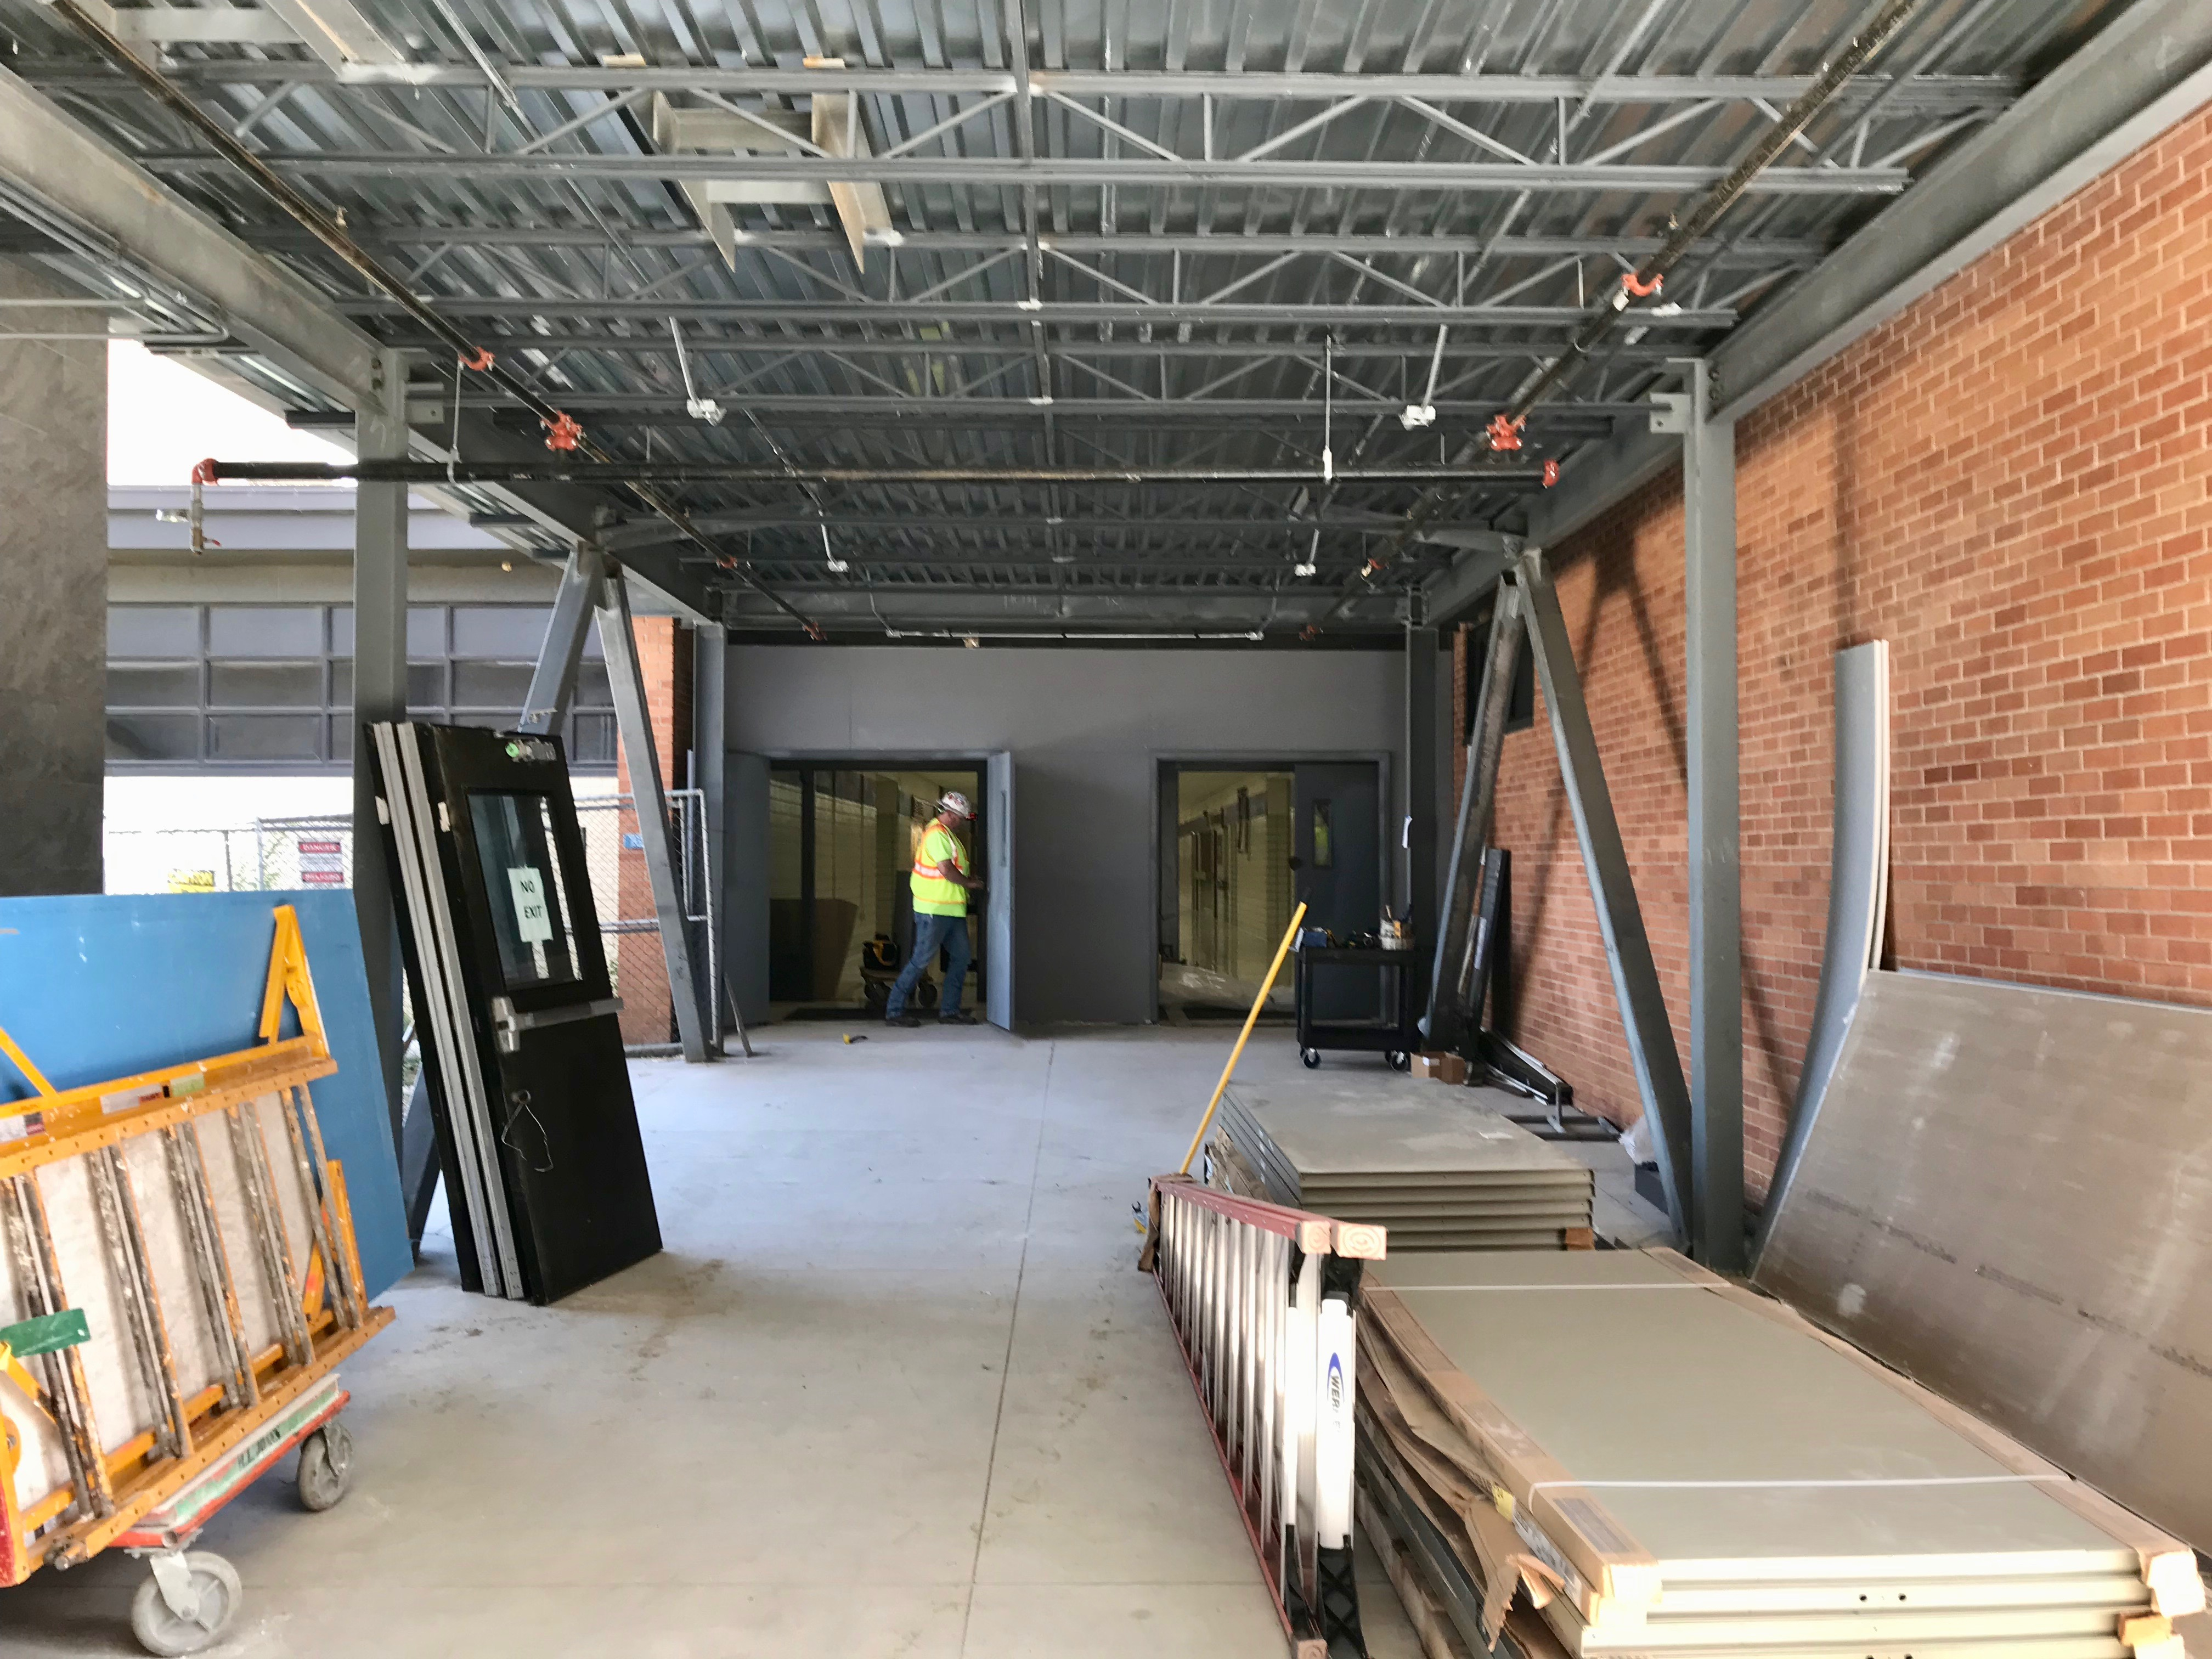 High school access construction